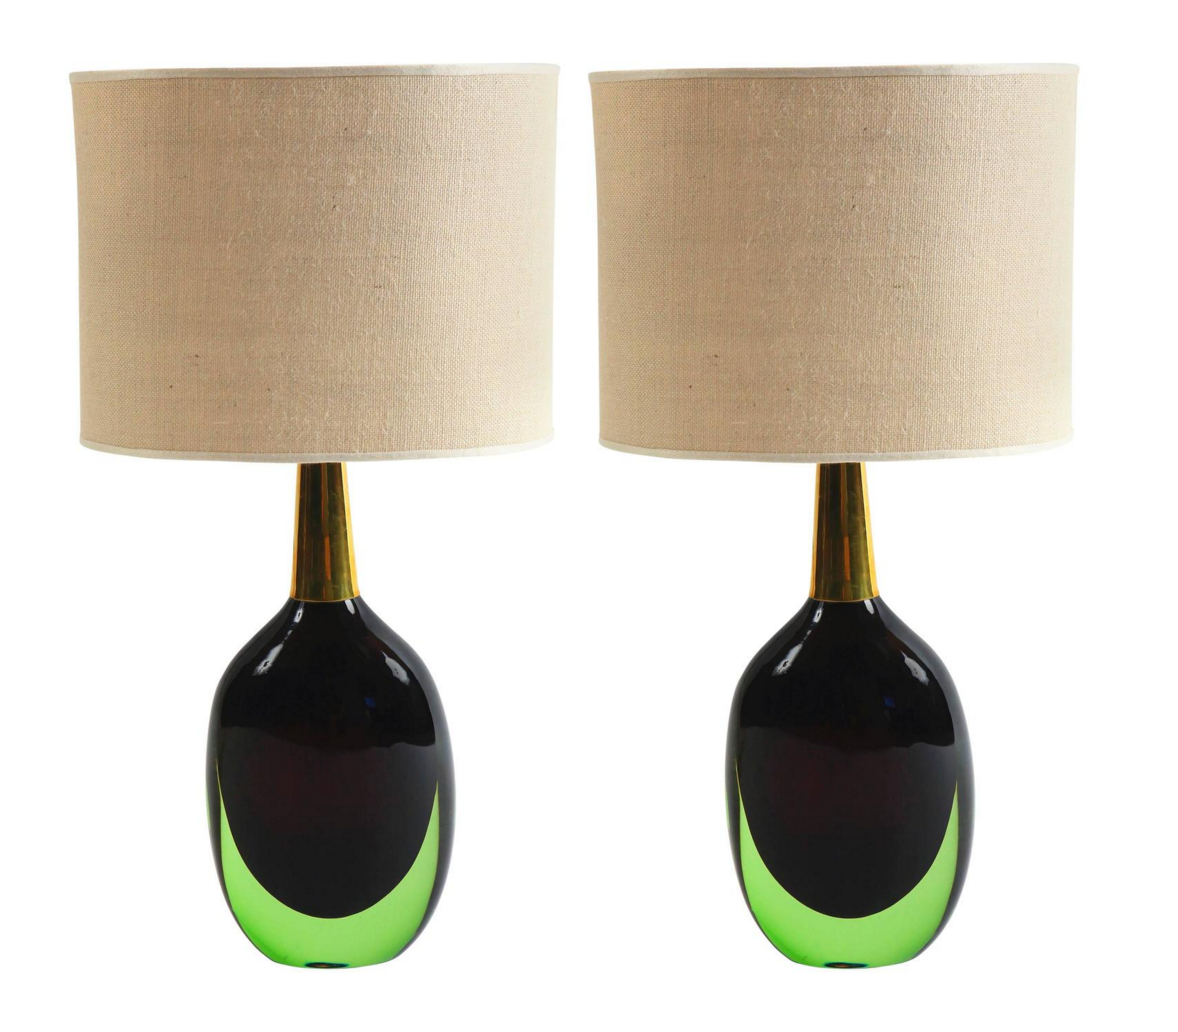 Pair of Seguso Murrano Glass Signed Table Lamps, 1950's